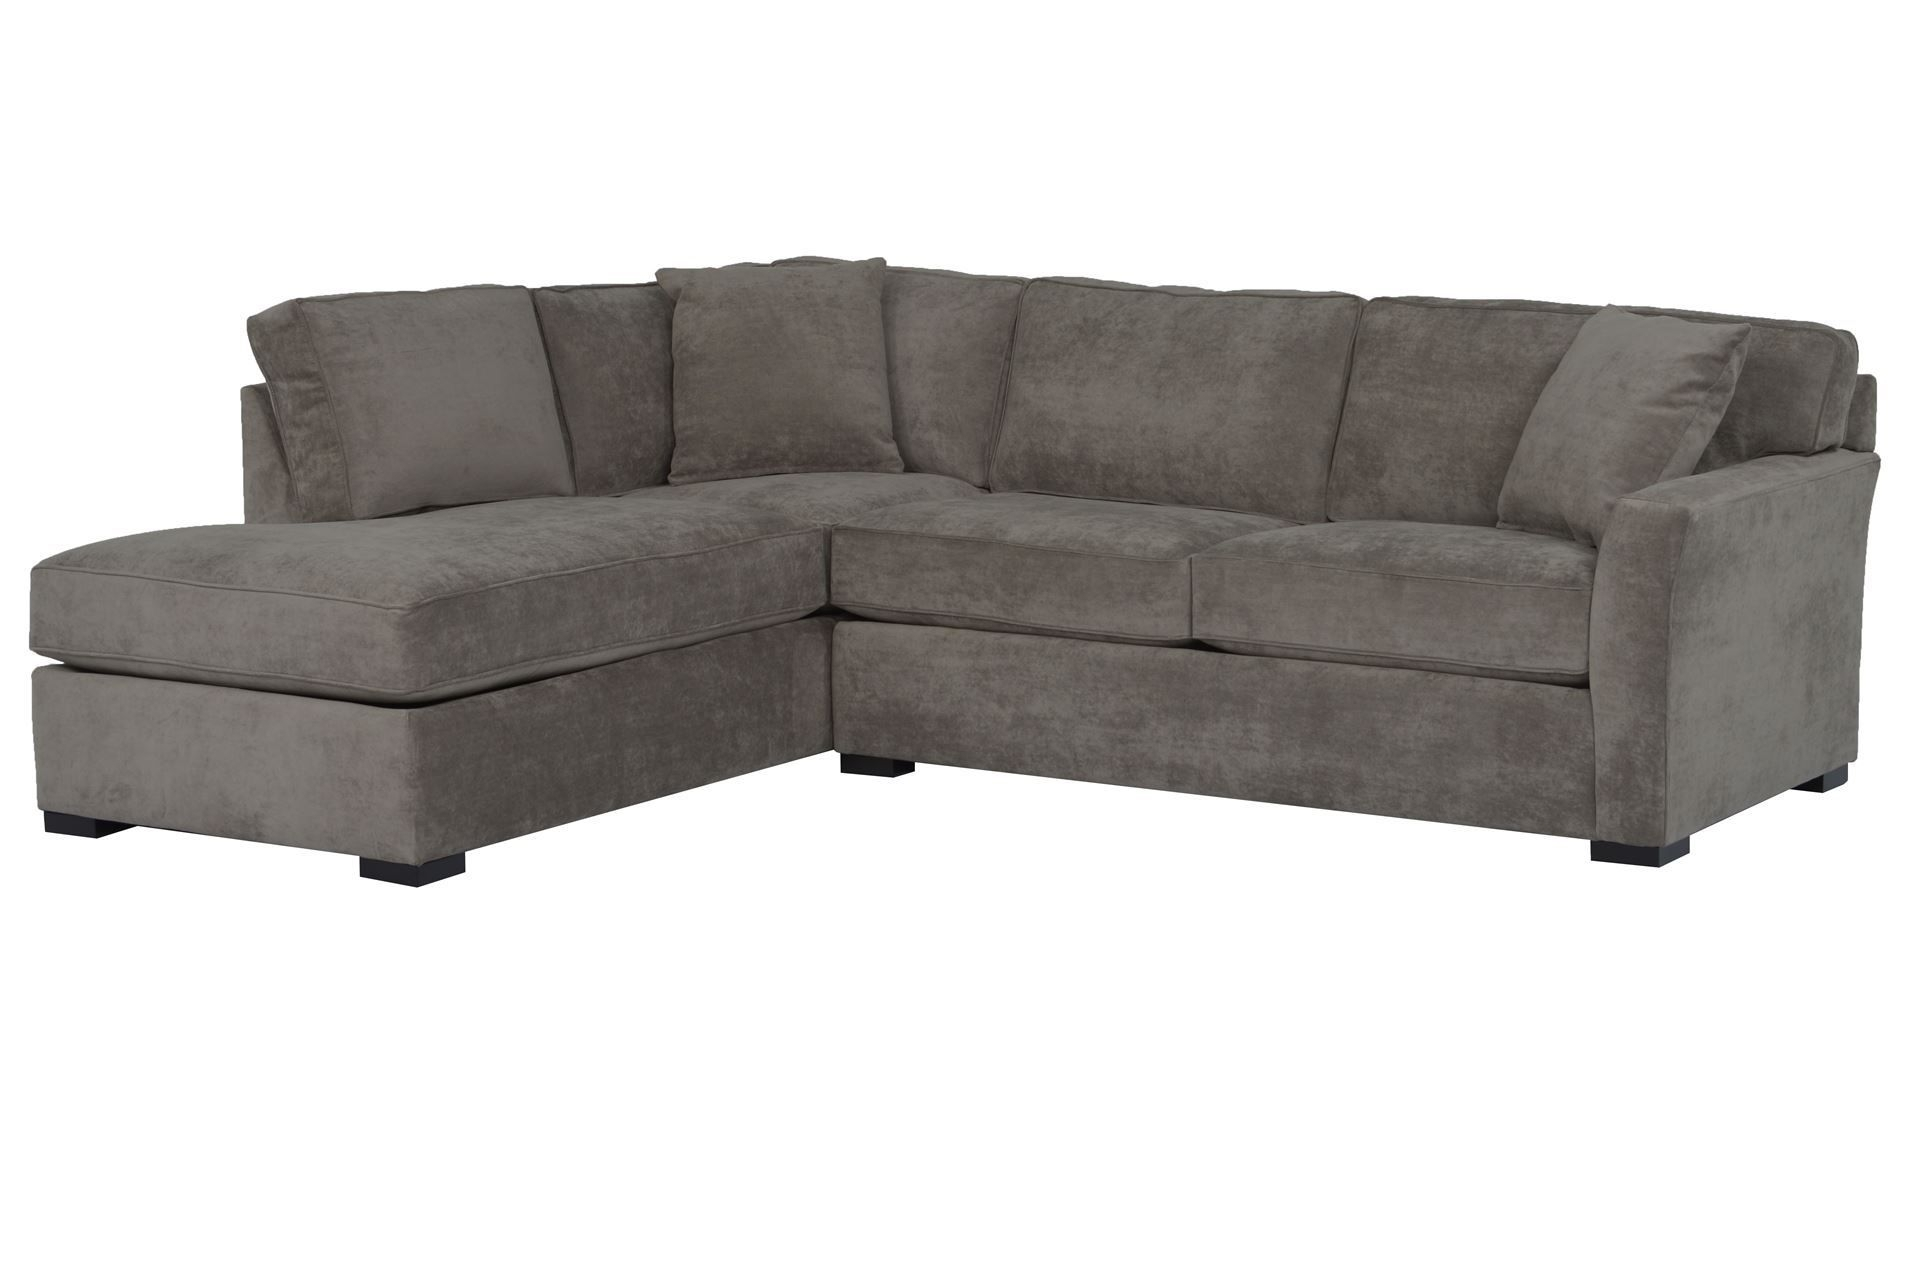 Aspen 2 Piece Sleeper Sectional W/laf Chaise | Living Room for Aspen 2 Piece Sectionals With Raf Chaise (Image 7 of 30)